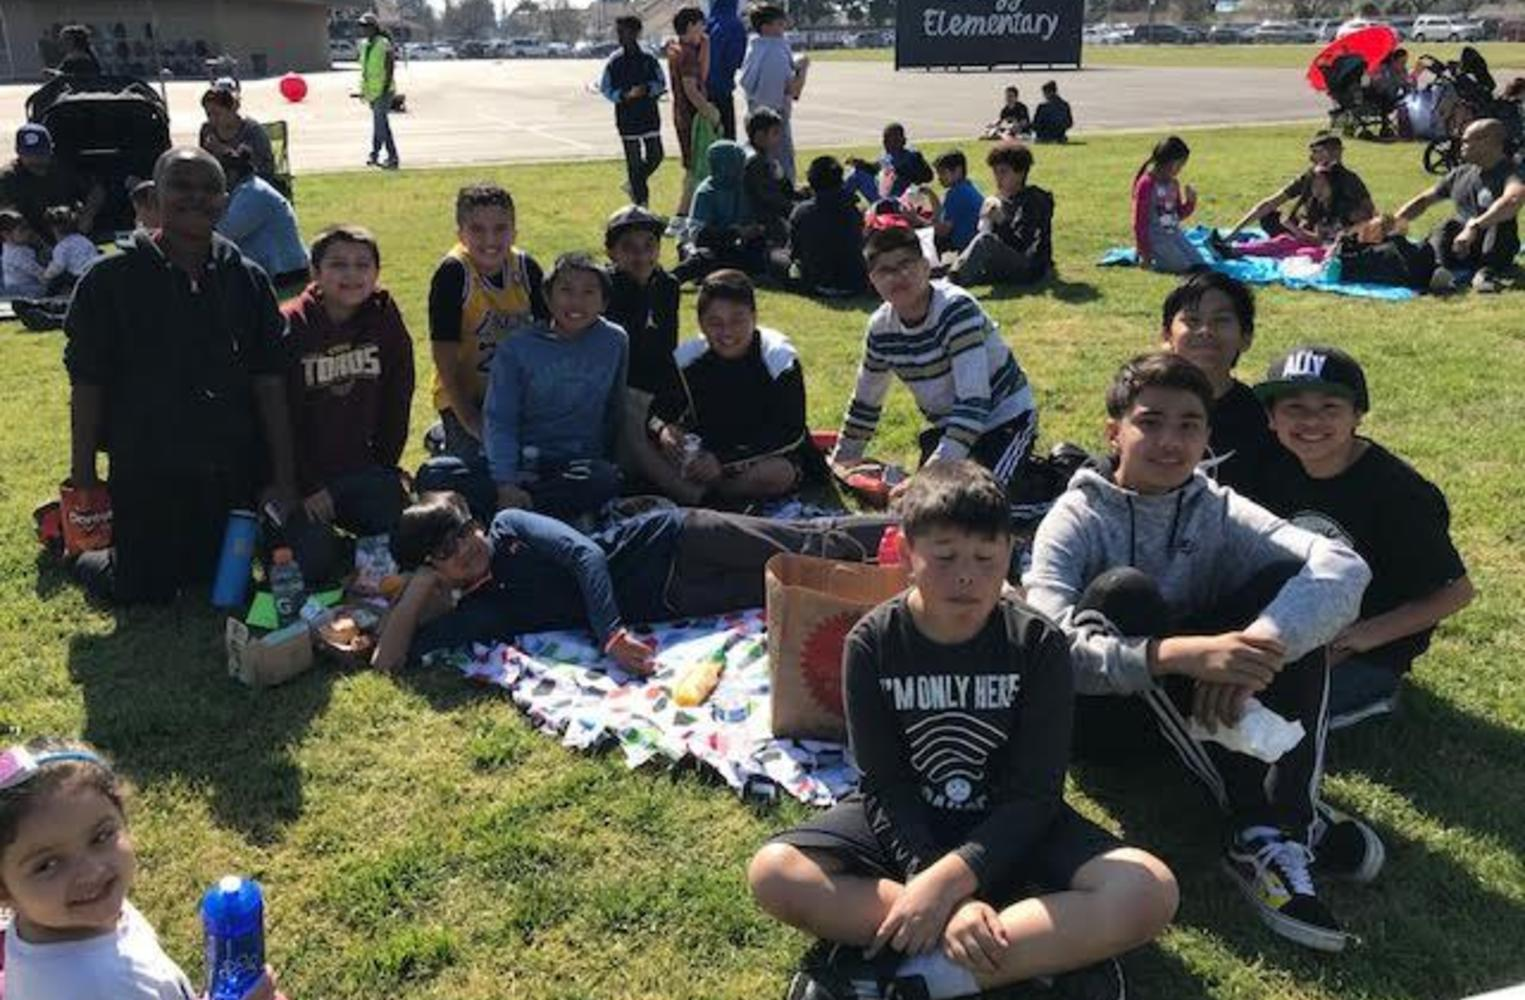 male students sitting on grass having a picnic